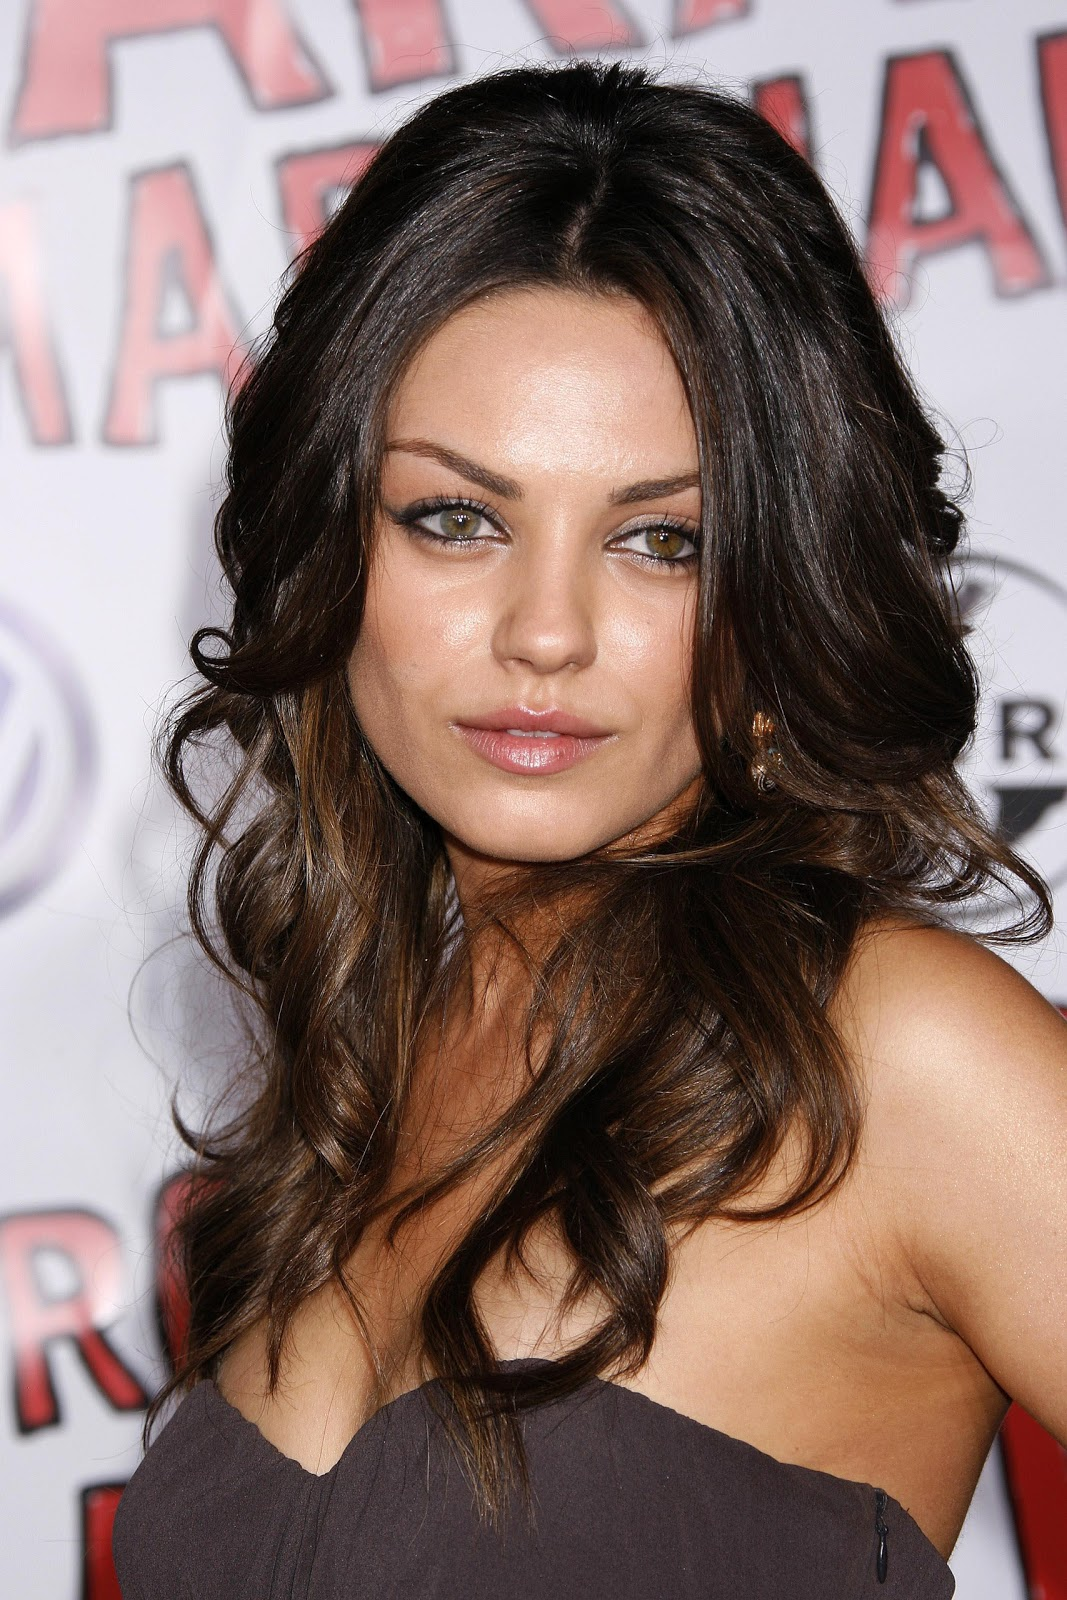 Mila kunis Wallpaper 6 With 1067 x 1600 Resolution ( 413kB )